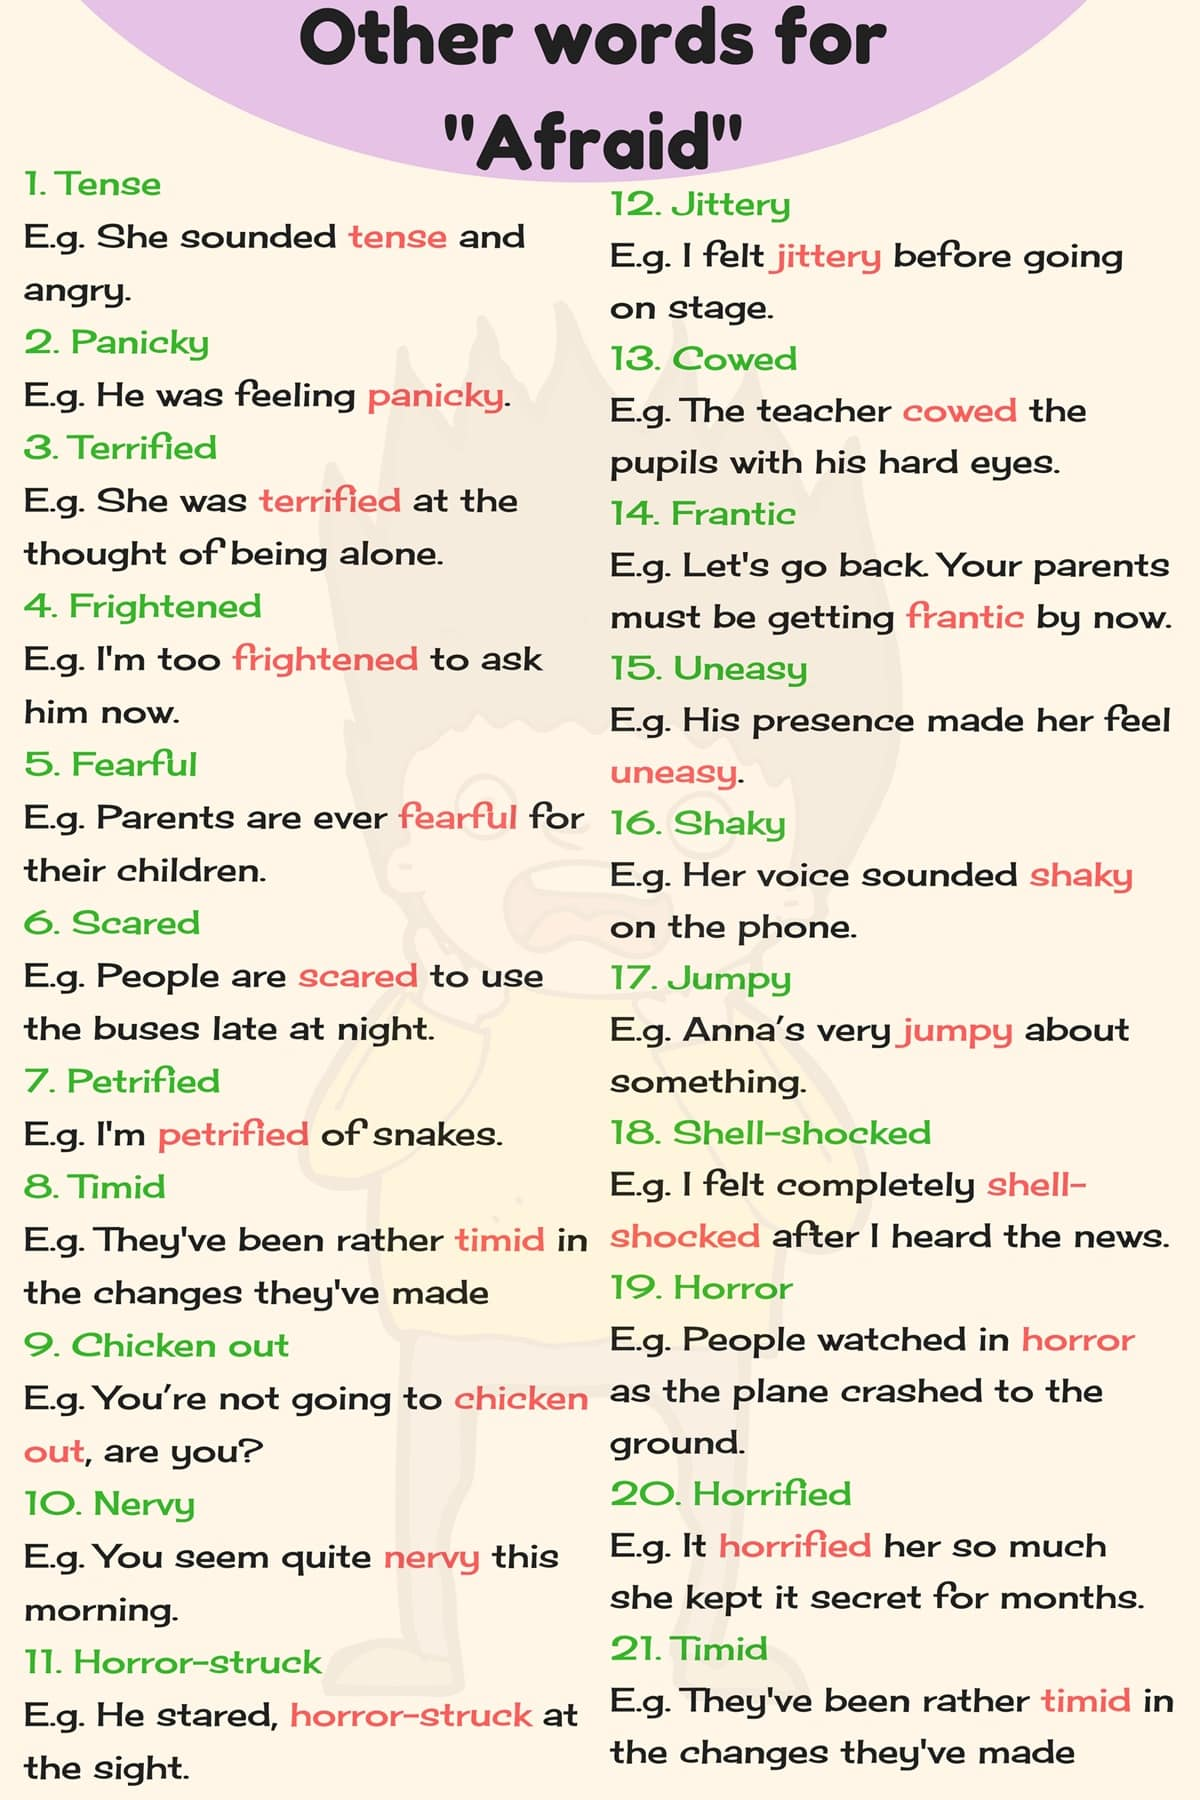 Other Ways To Say Common Things in English 4